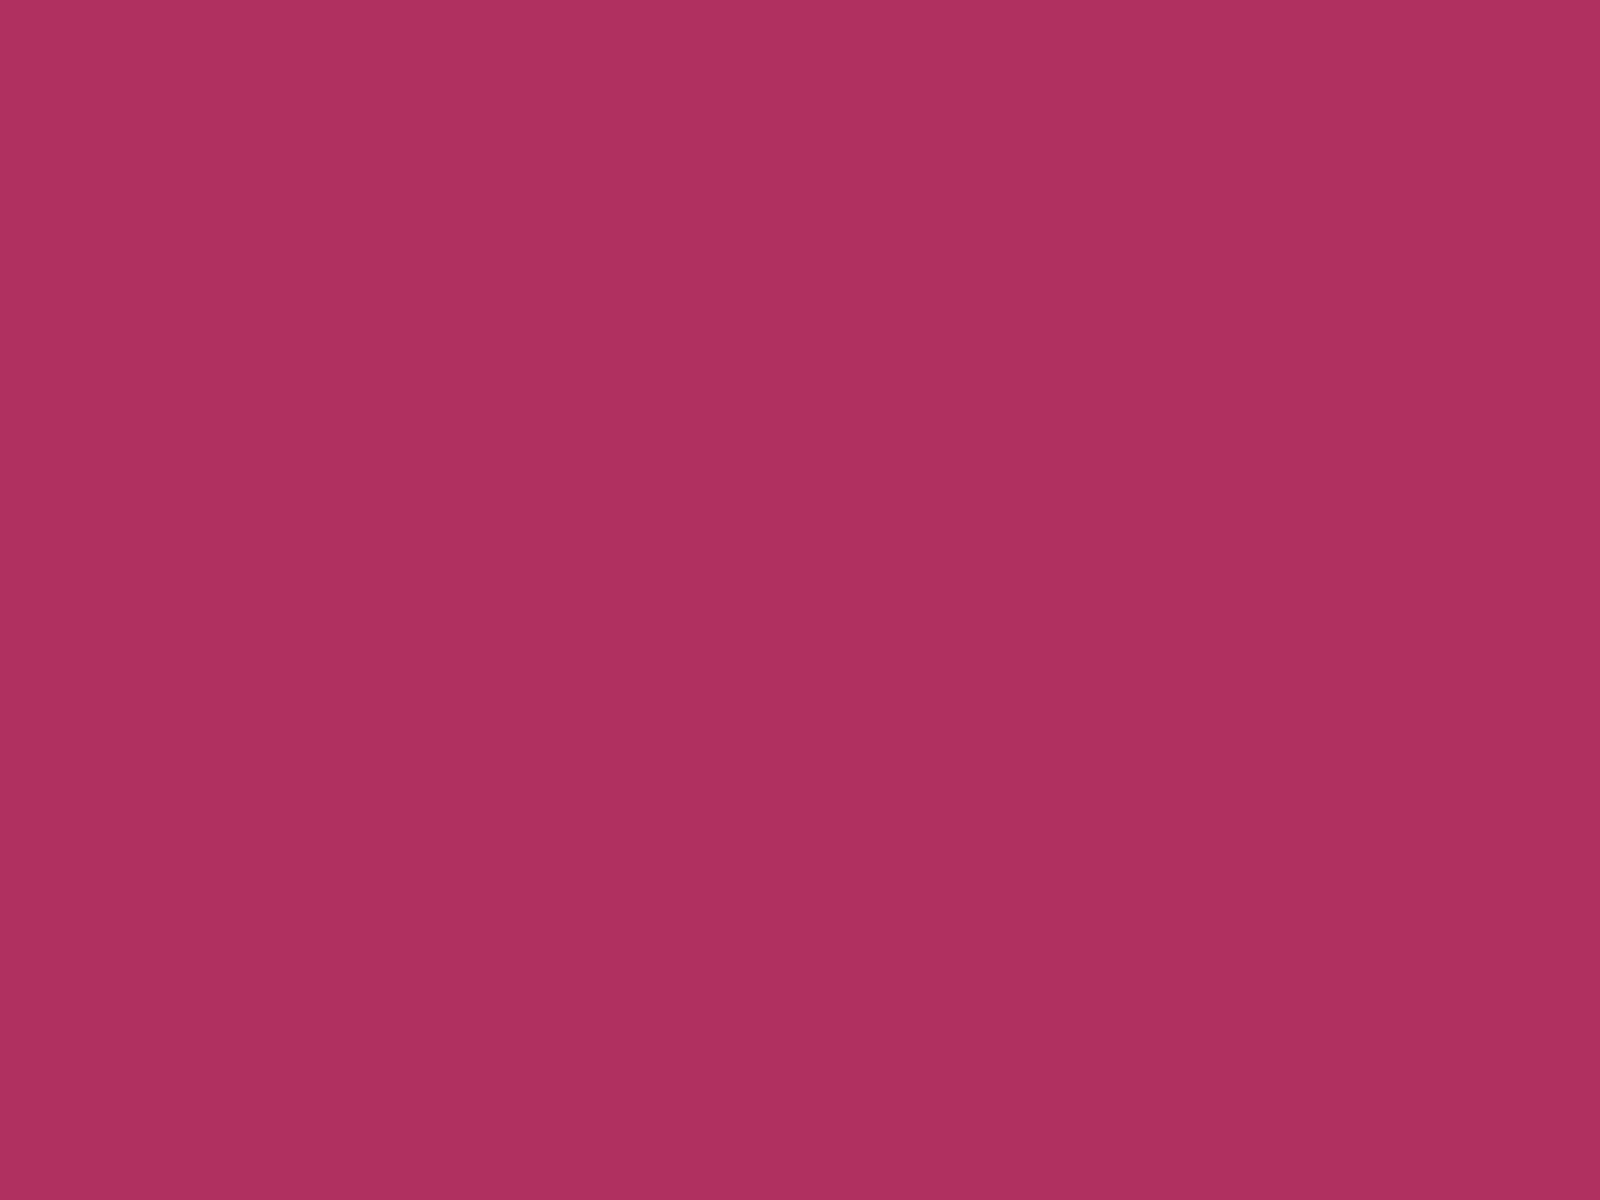 1600x1200 Rich Maroon Solid Color Background